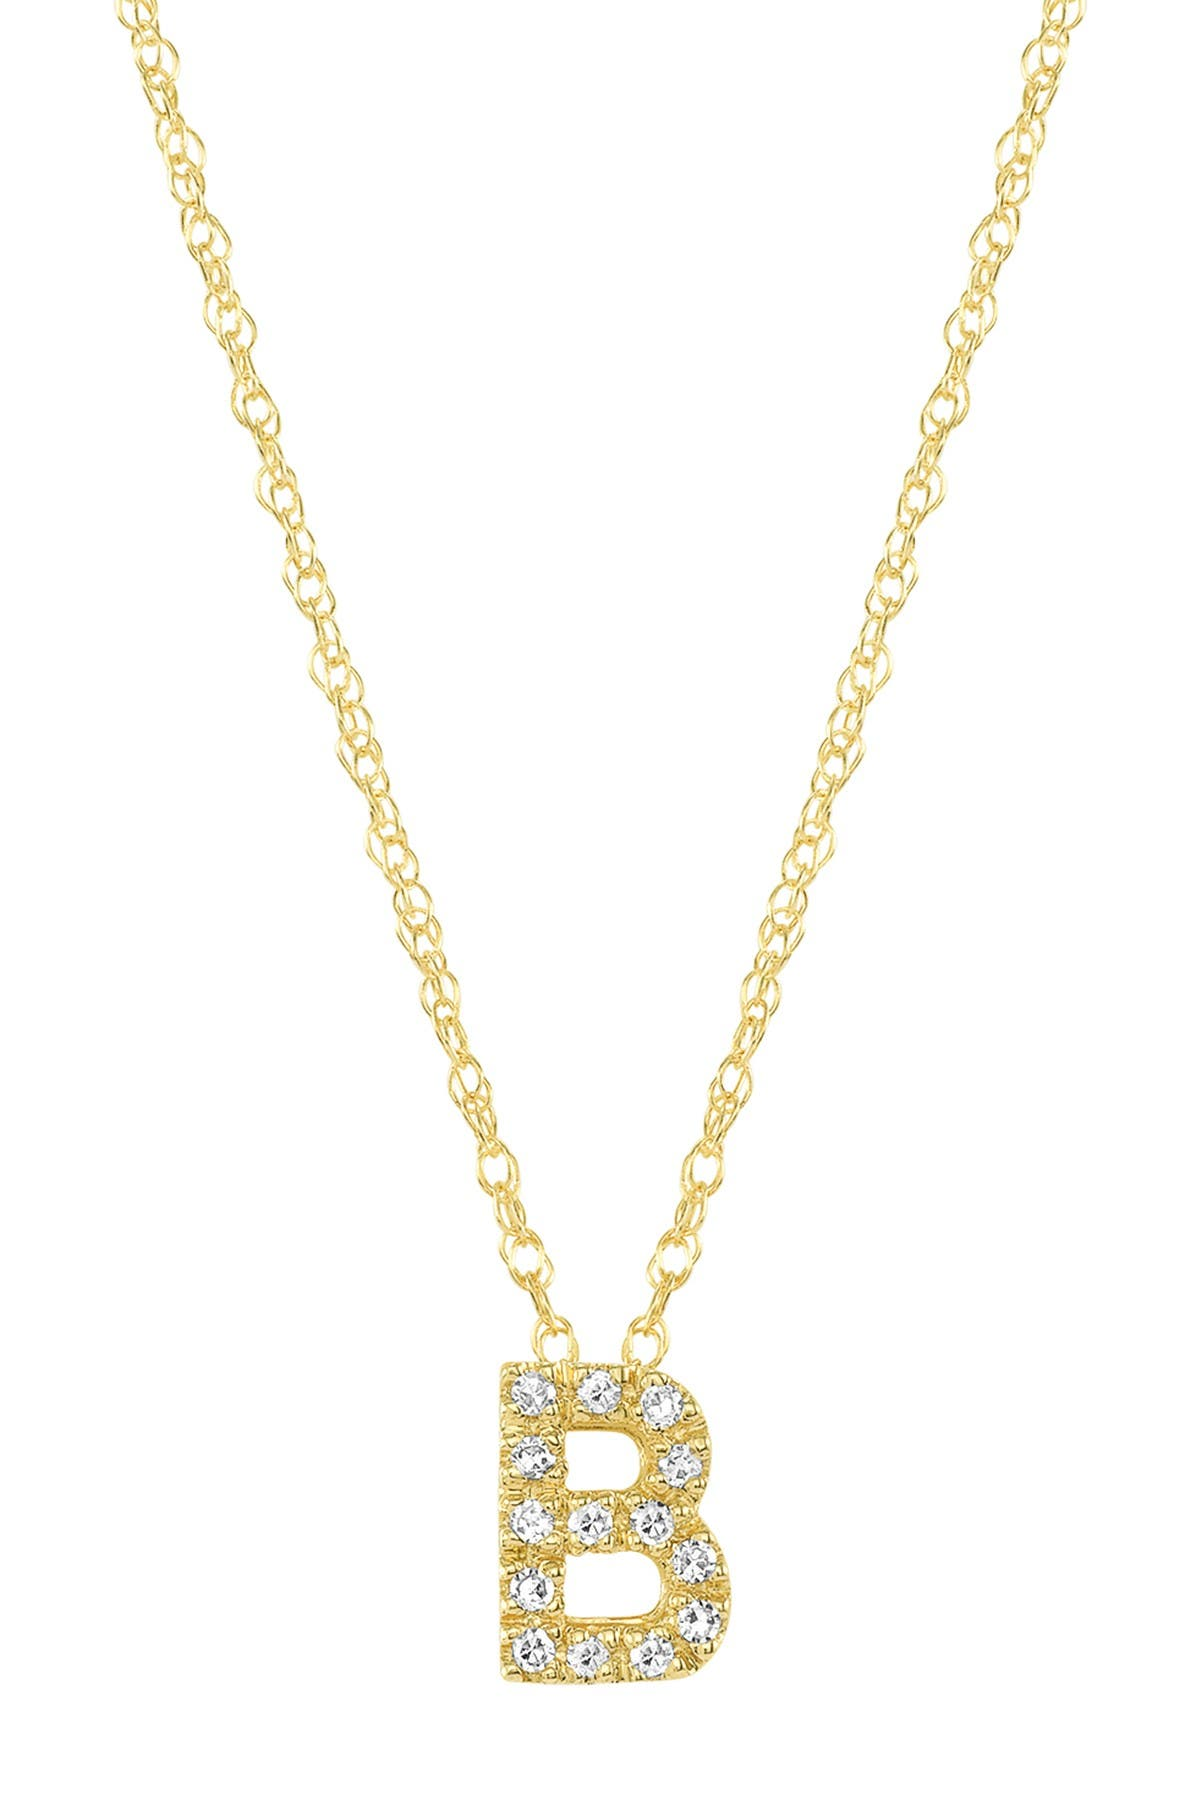 Image of Ron Hami 14K Yellow Gold Diamond Initial Slider Pendant Necklace - 0.03 ctw - Multiple Letters Available